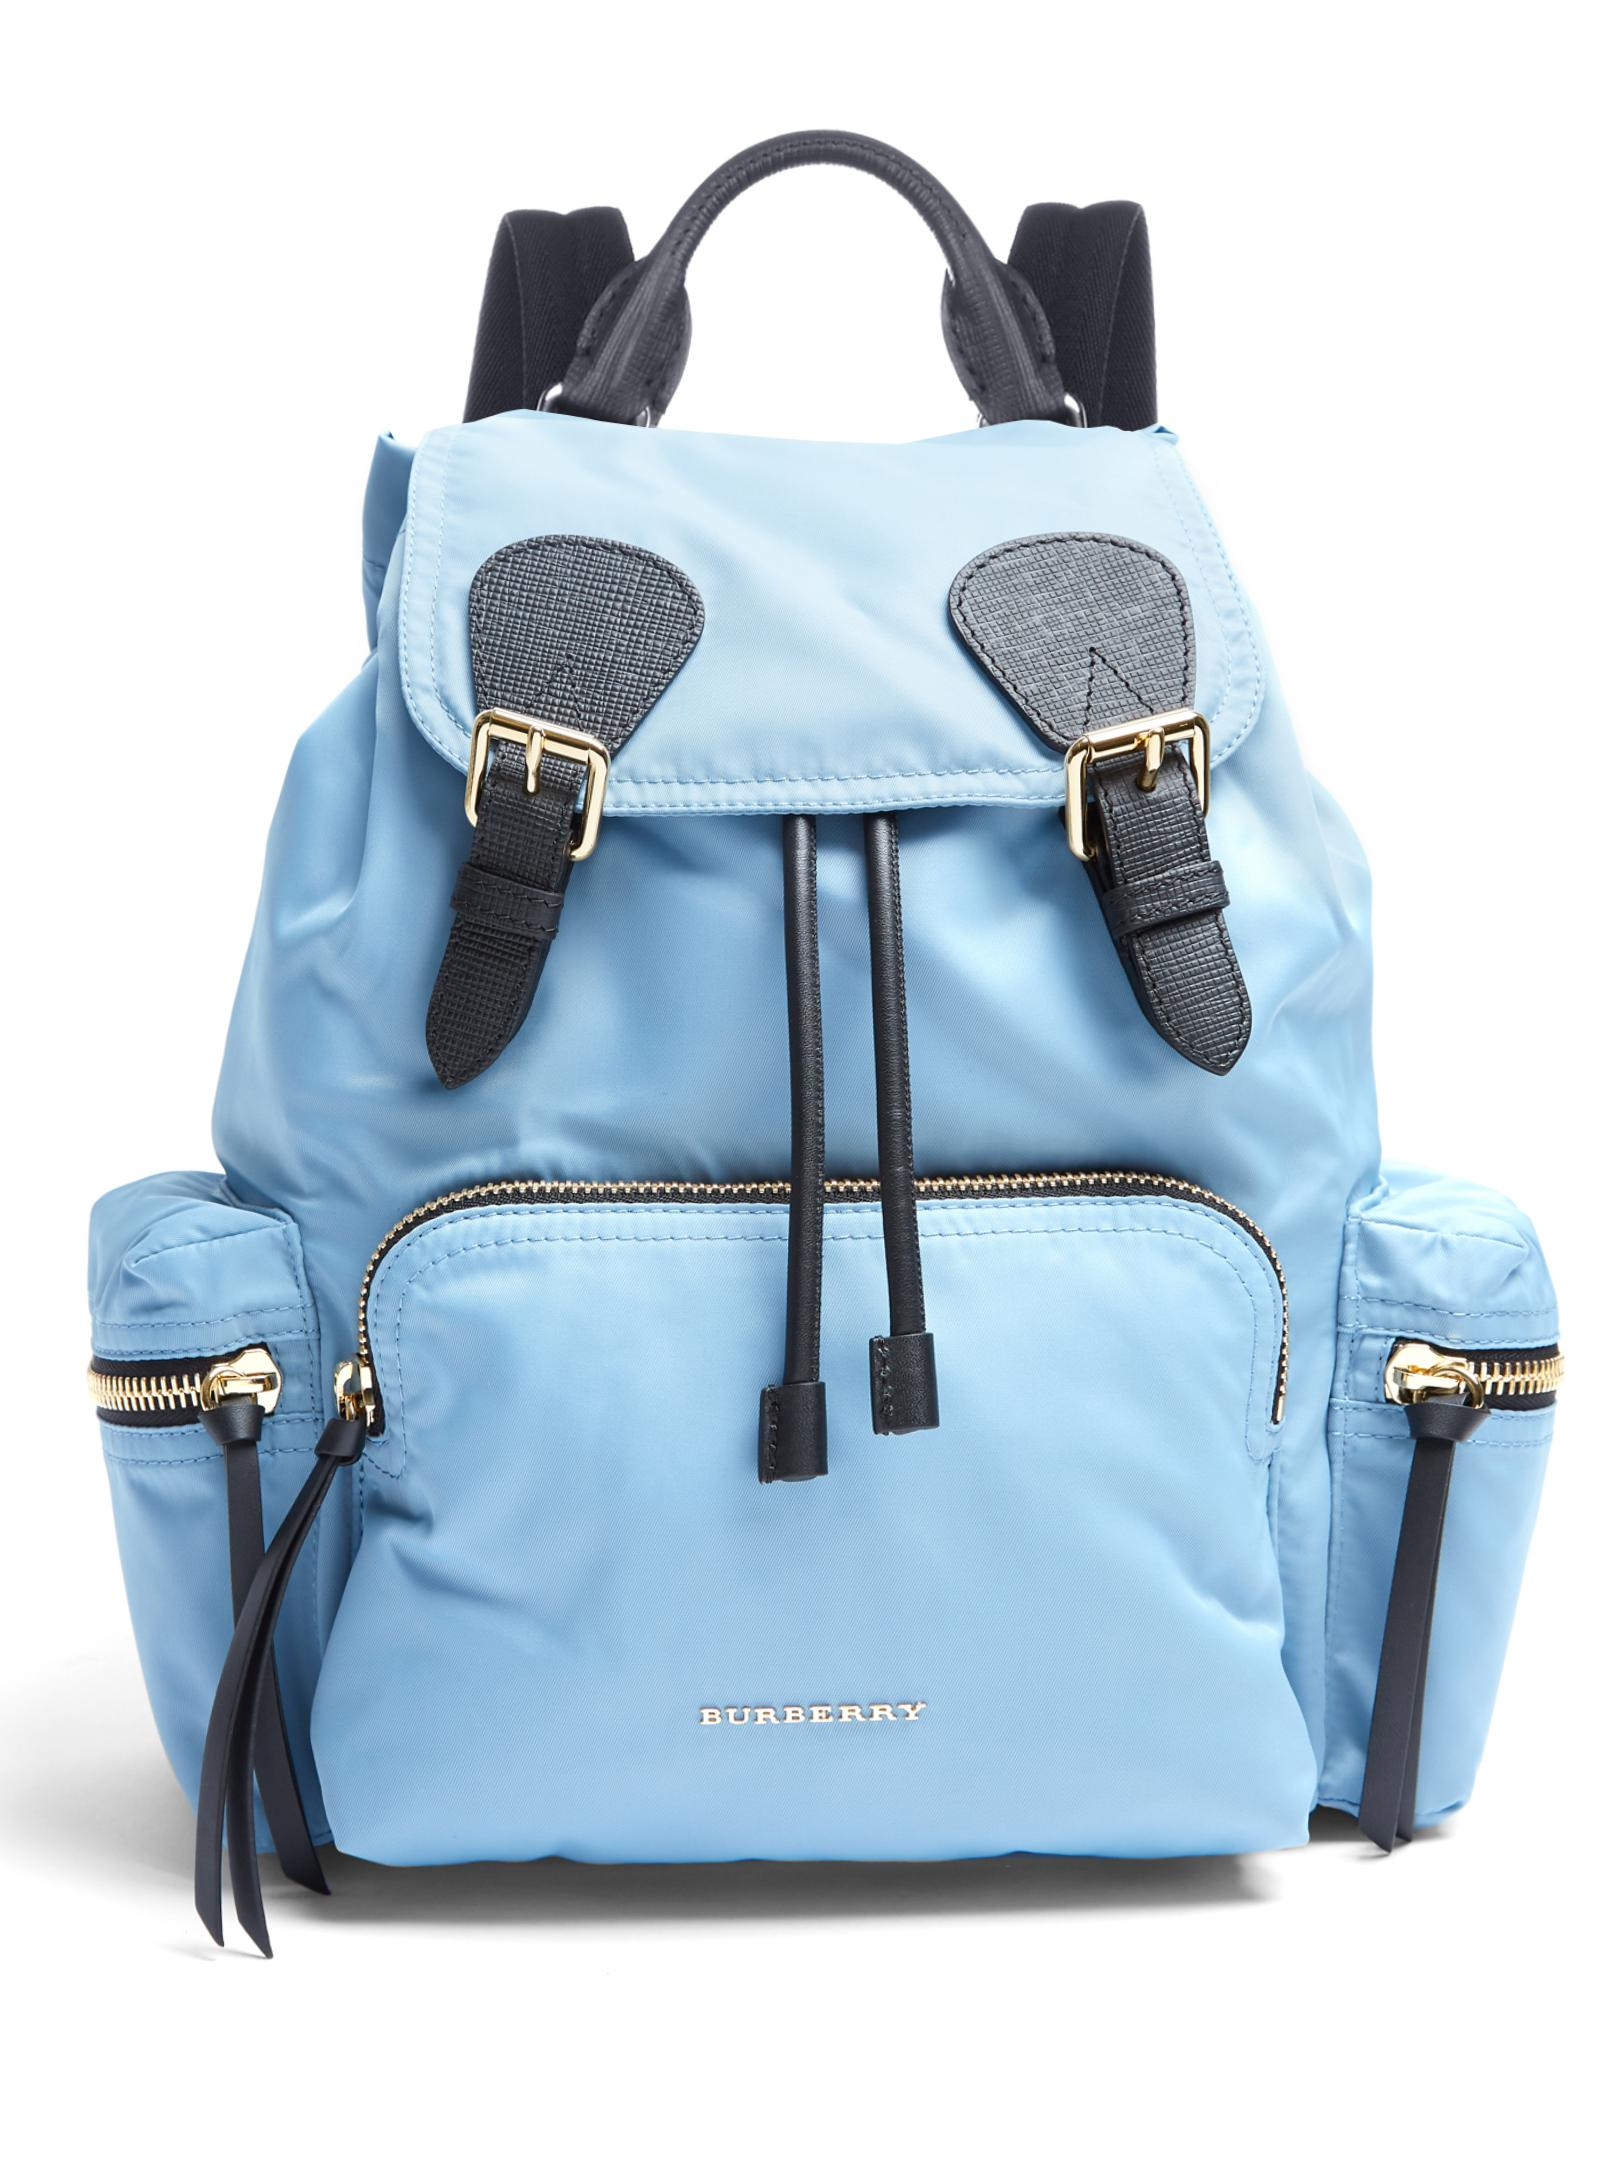 ad9870d075301 Burberry Medium Nylon Backpack in Blue - Lyst